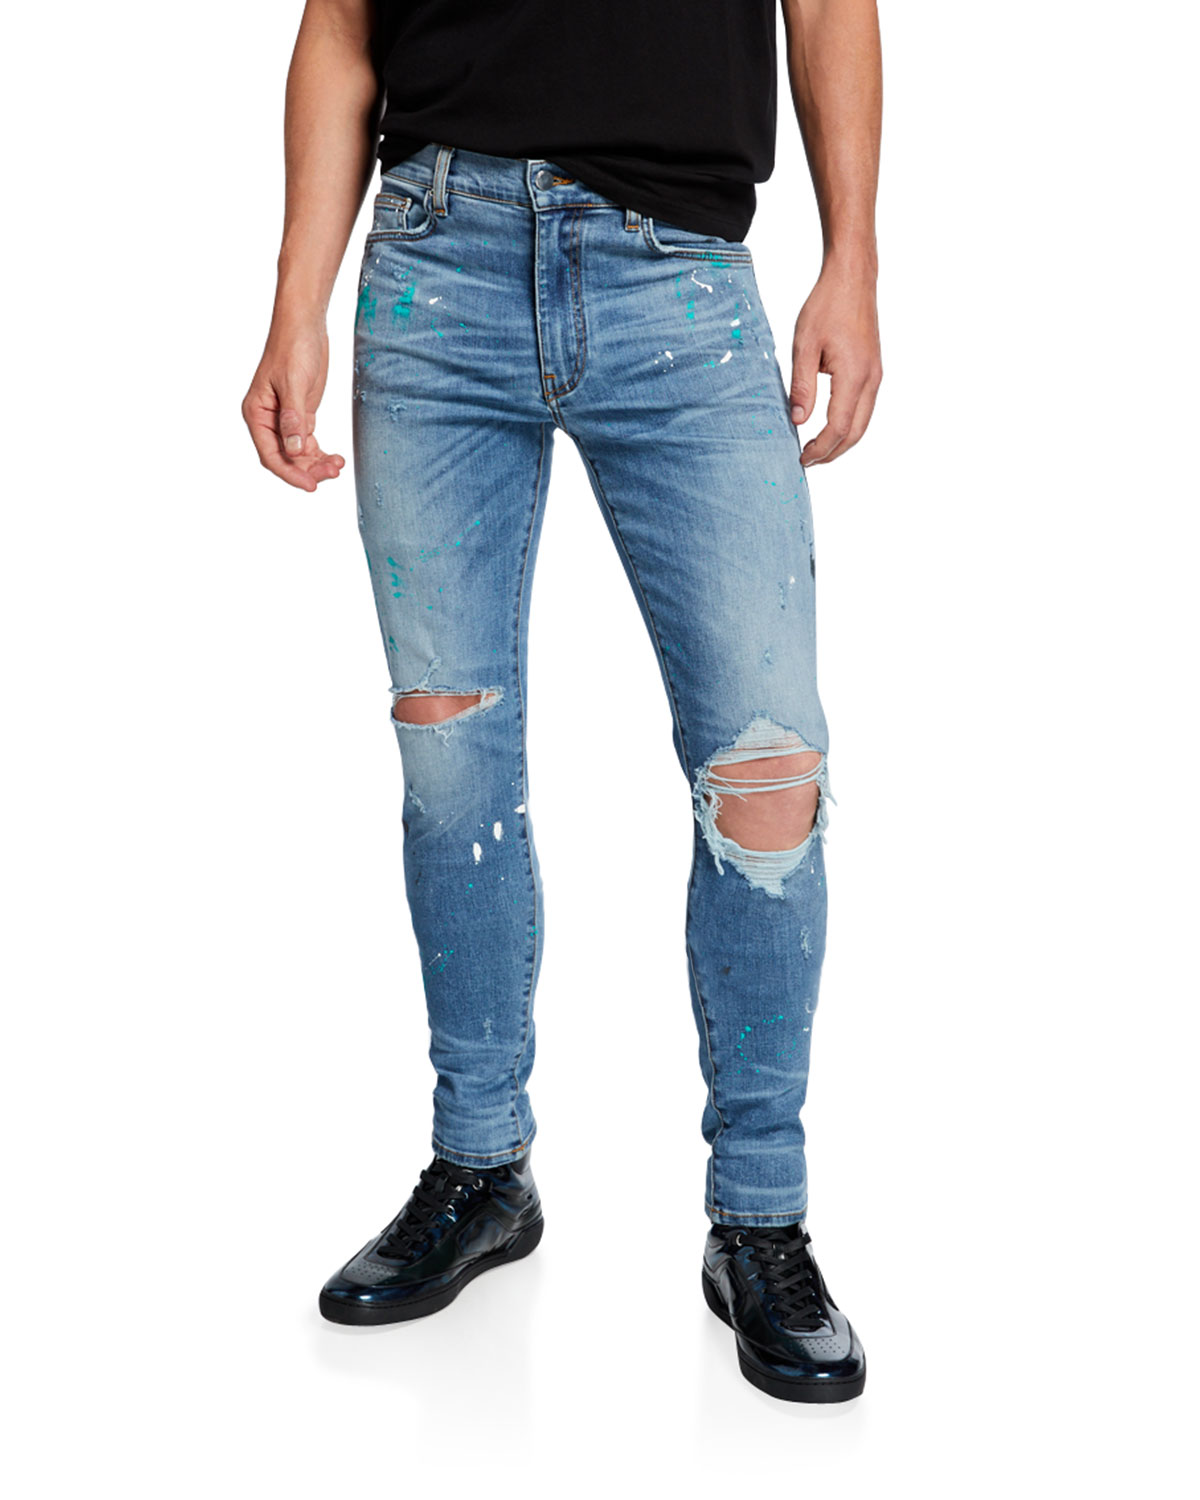 Amiri Jeans MEN'S PAINT-SPLATTER SKINNY JEANS WITH RIPPED KNEE